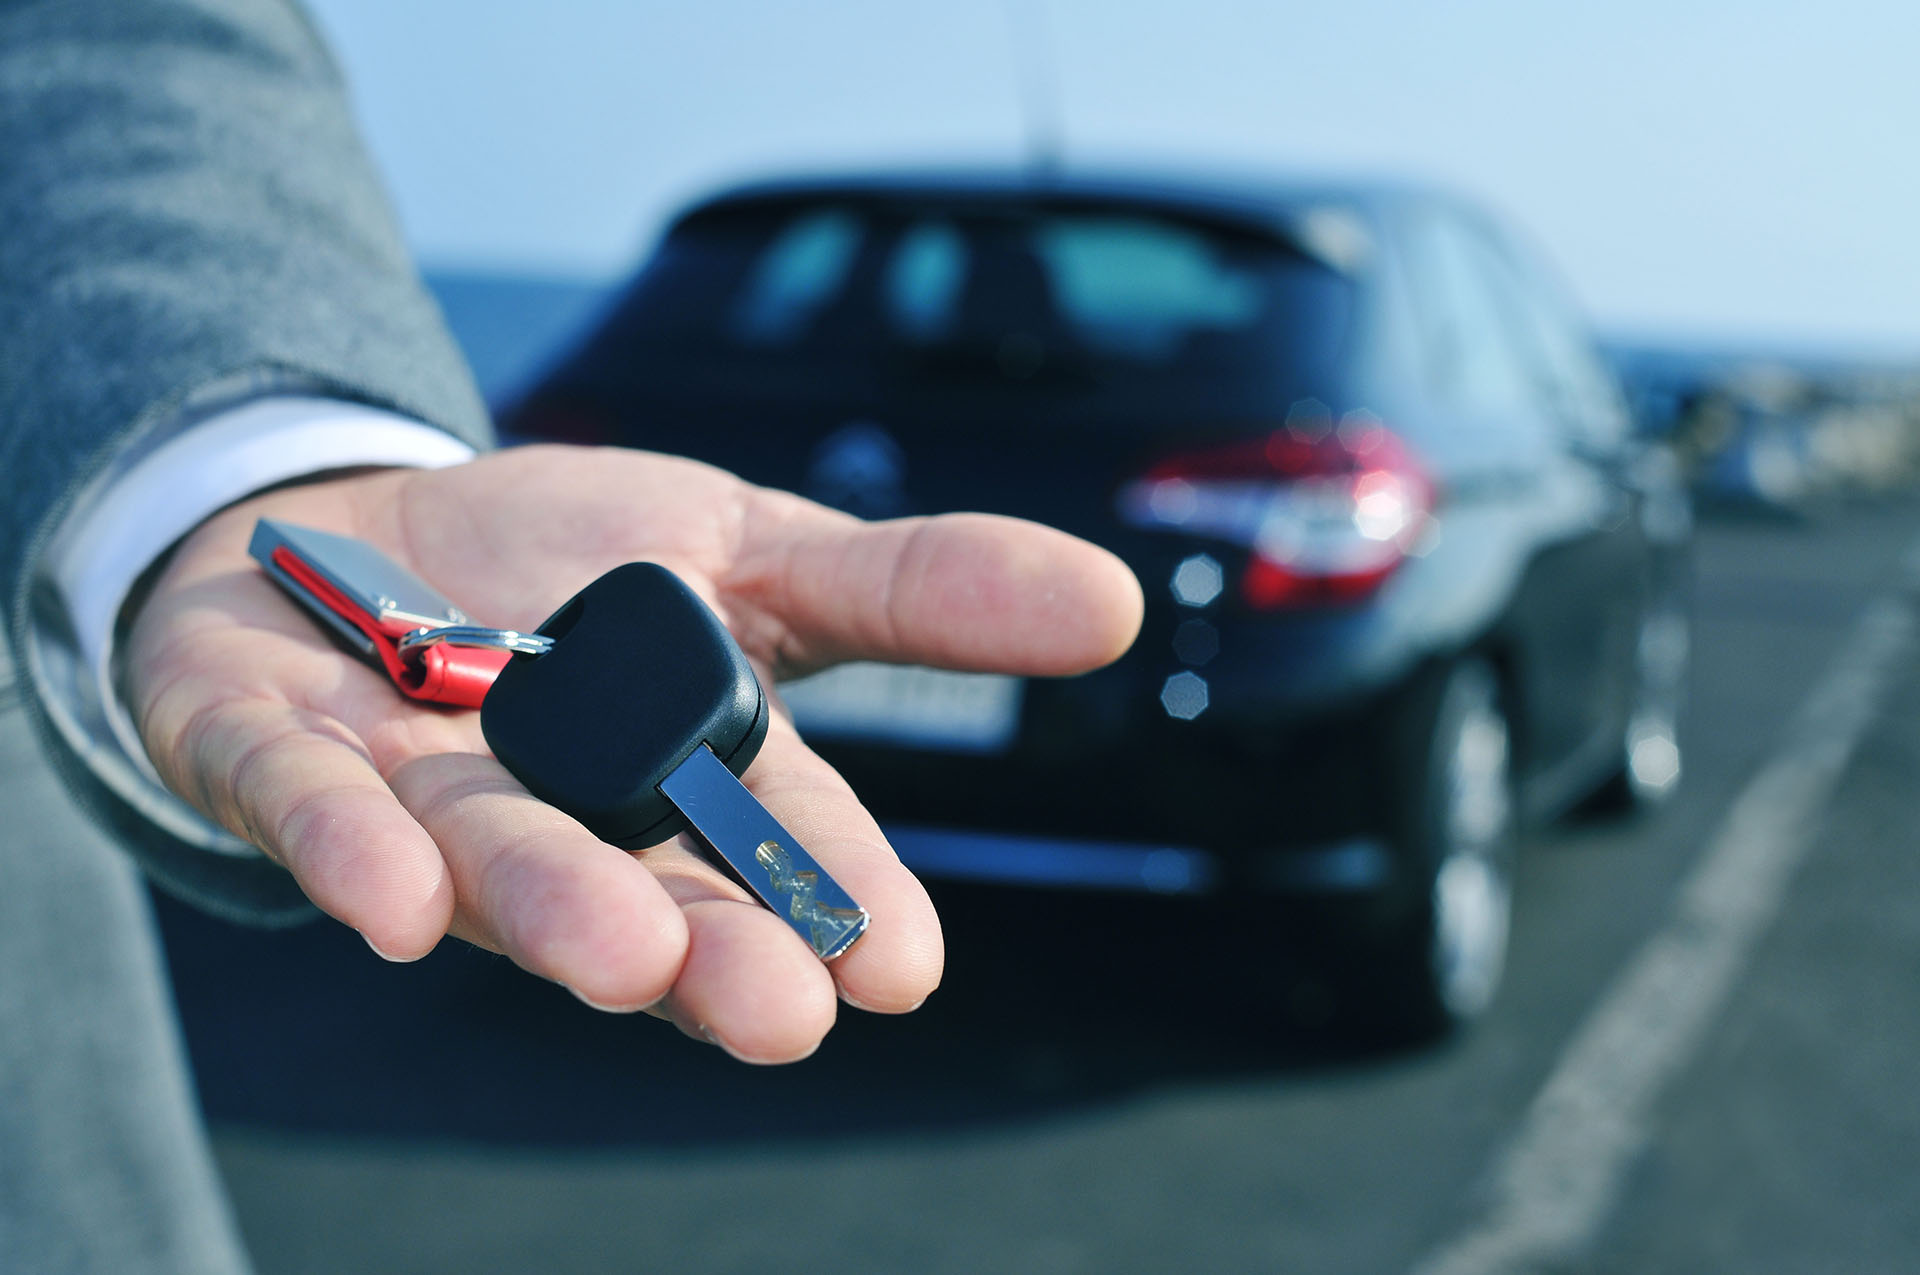 Car keys in a hand